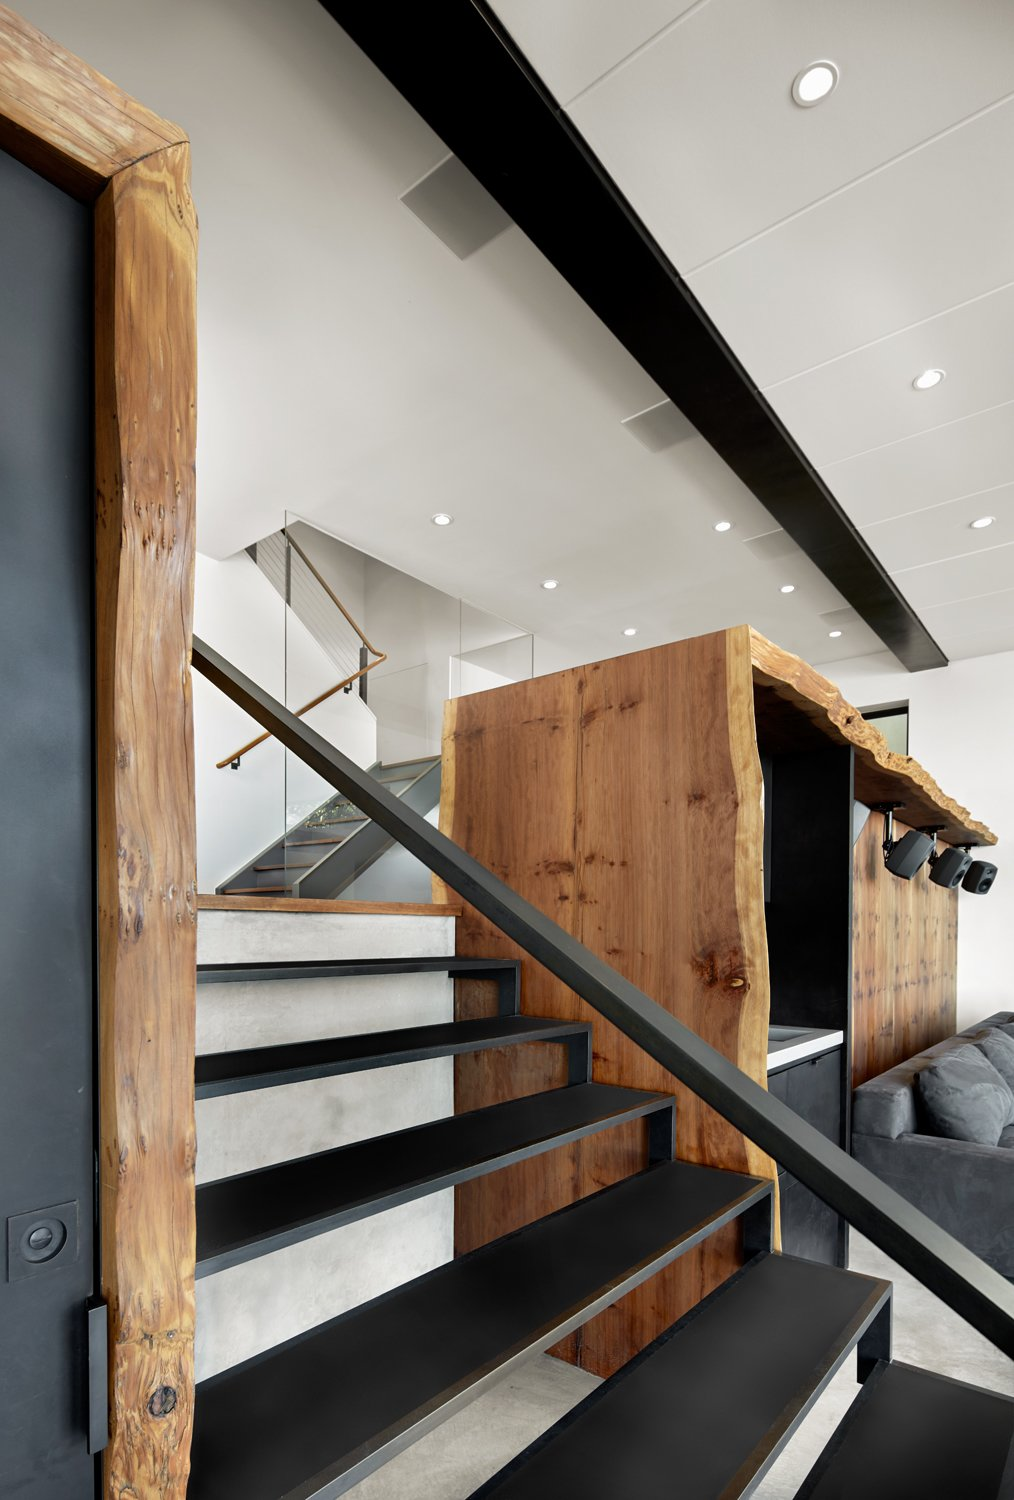 Staircase, Metal Tread, and Metal Railing The custom steel stair by Metropolis Metalworks serves as the centerpiece to the space. The live edge burled Redwoods slabs covers the listening area and wetbar. In the distance, the stair leads up to the rest of the home and more everyday life.  Photo 3 of 6 in Top 5 Homes of the Week With Top-Notch Woodwork from Twin Peaks Escape Pad